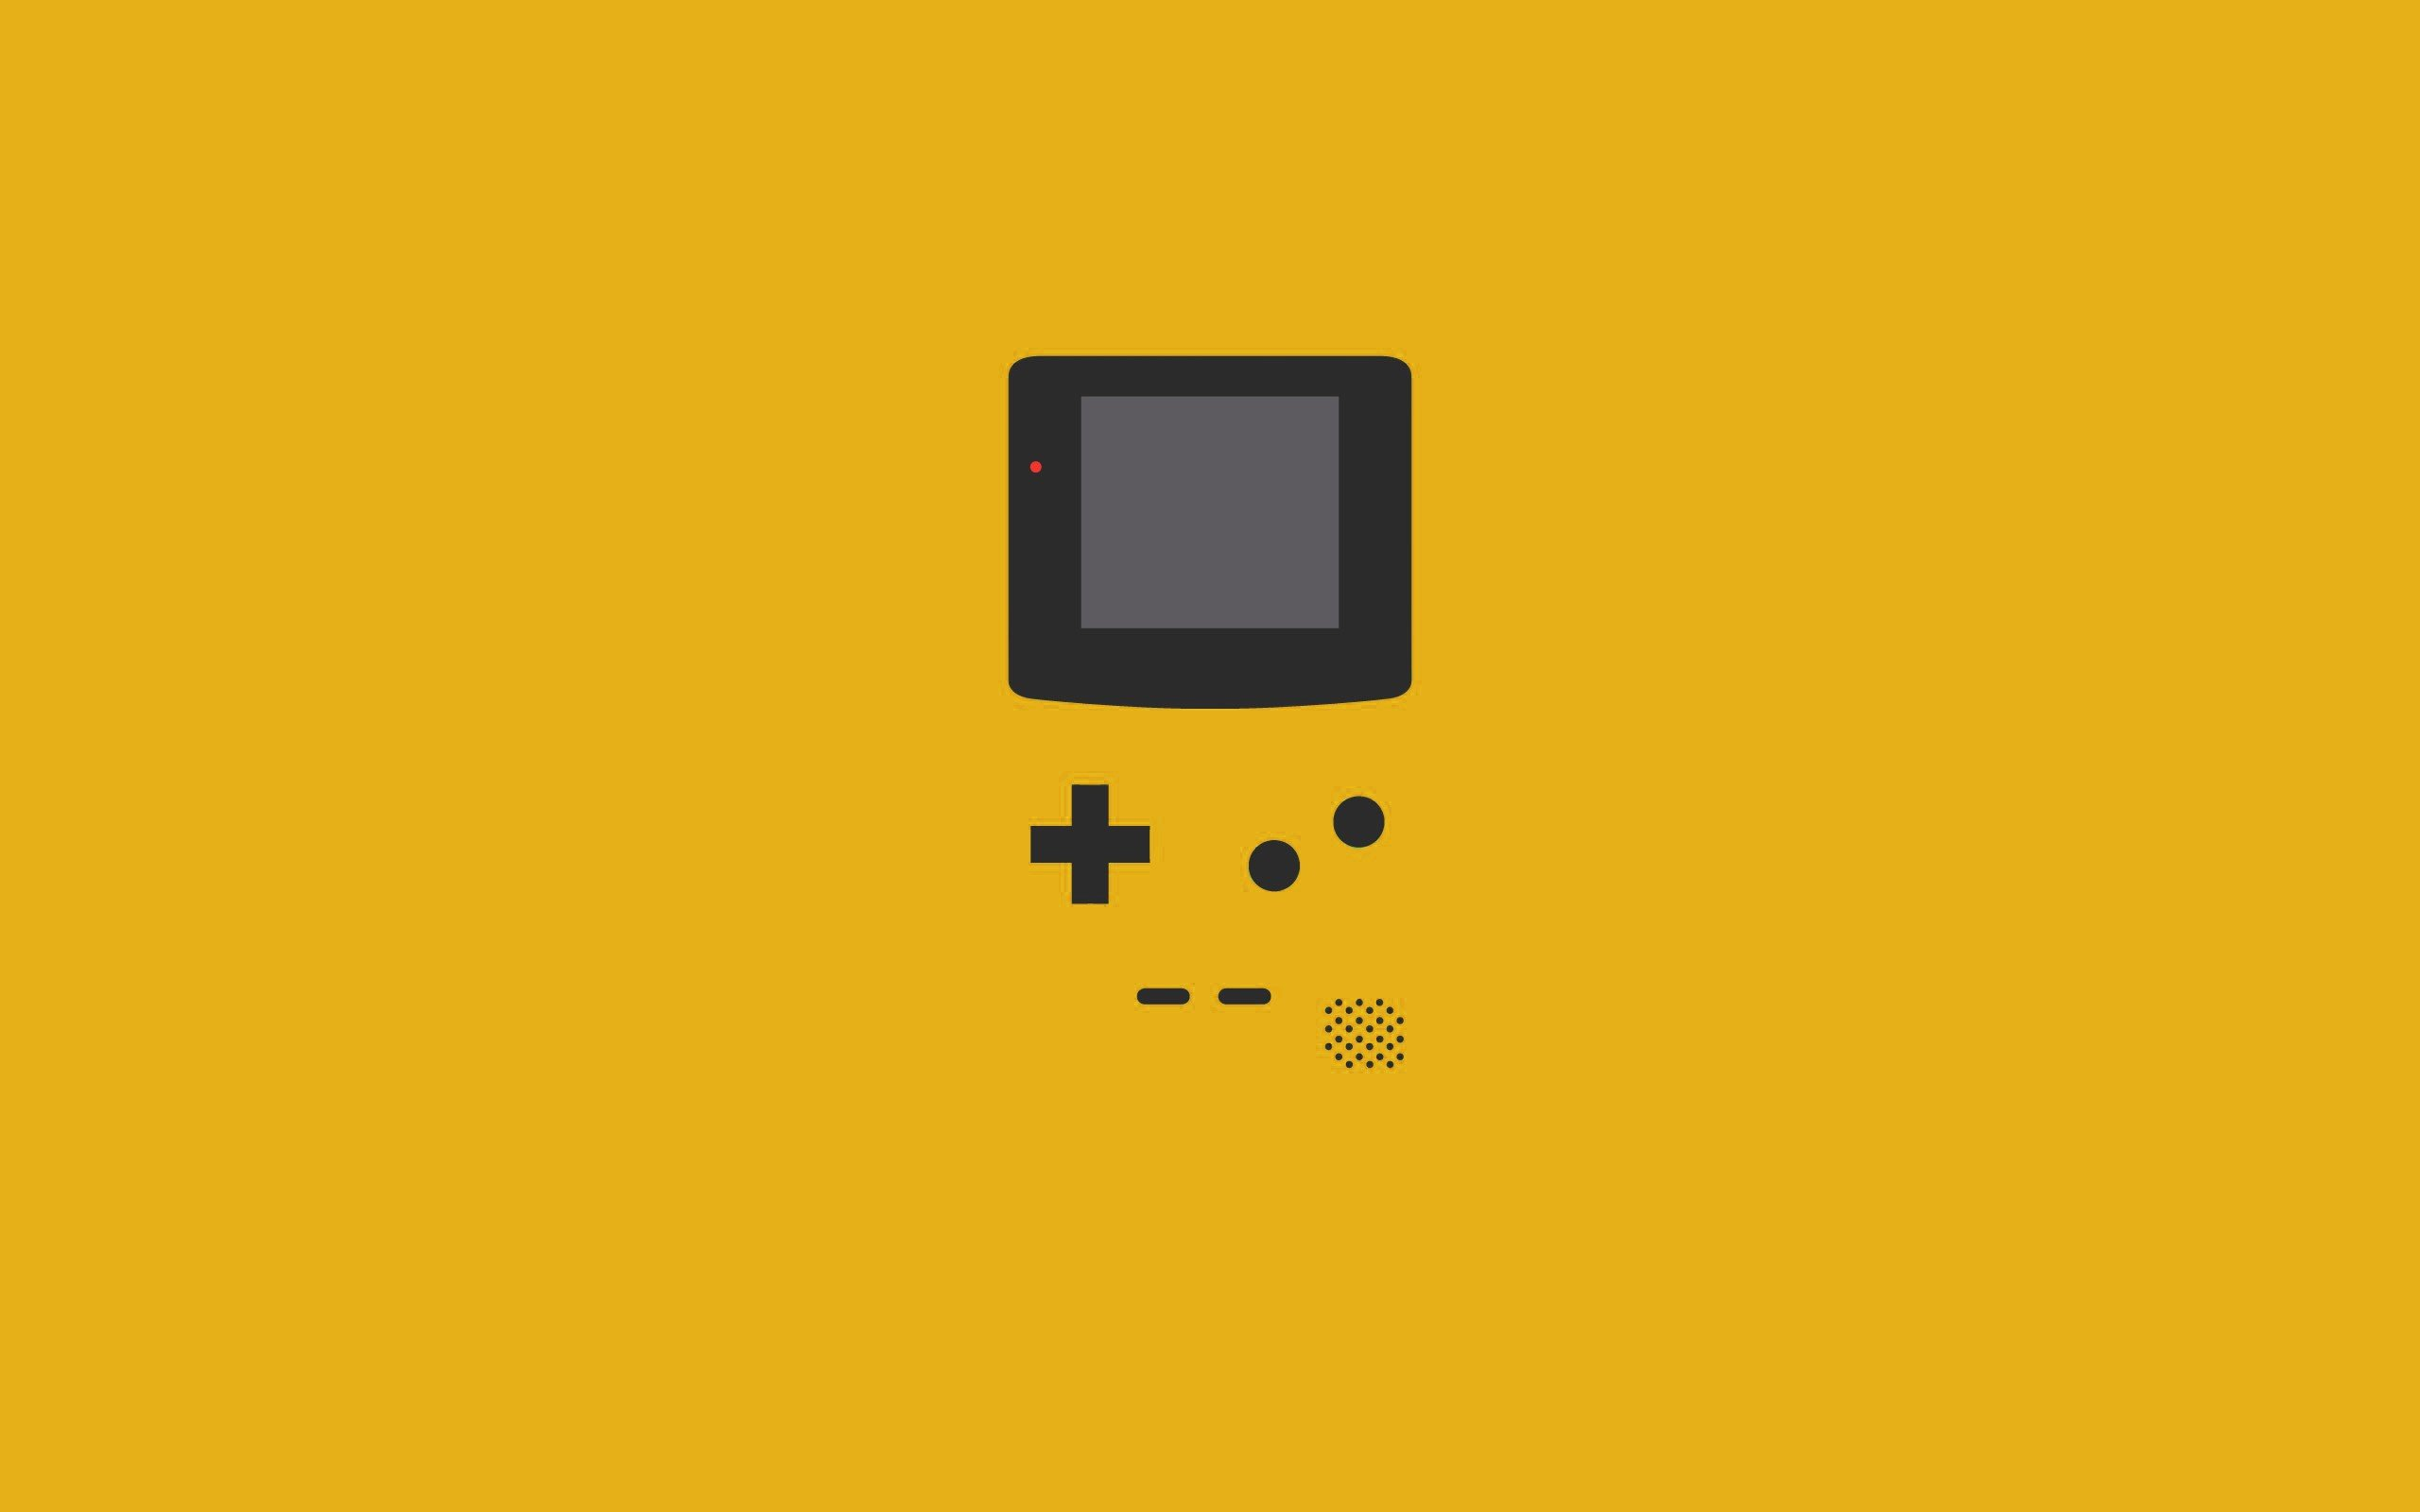 Gameboy Logo Wallpaper